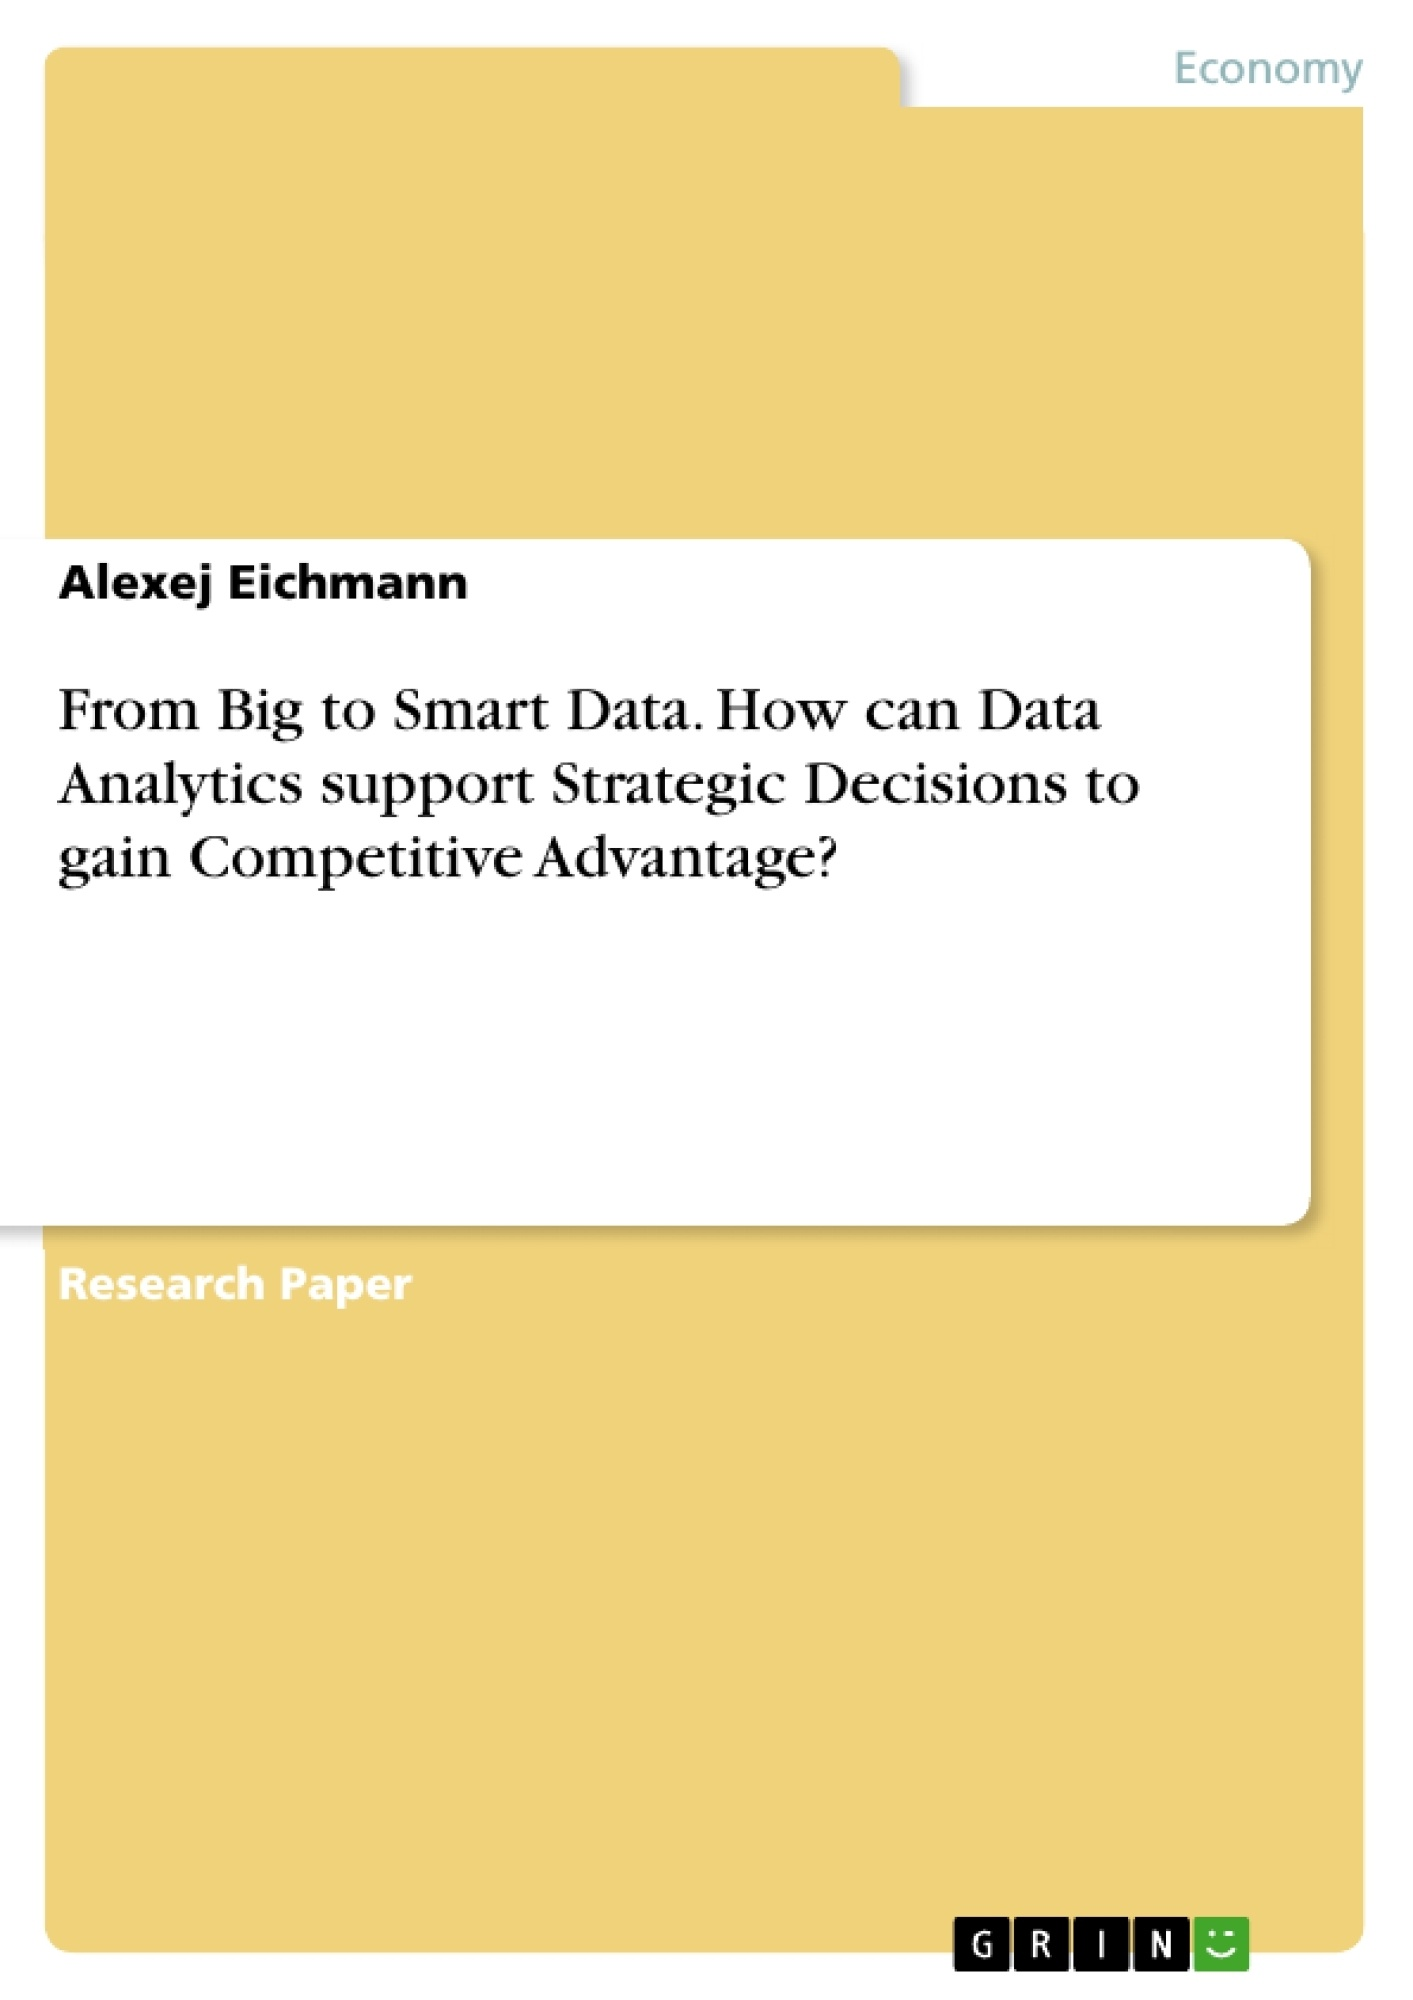 Title: From Big to Smart Data. How can Data Analytics support Strategic Decisions to gain Competitive Advantage?